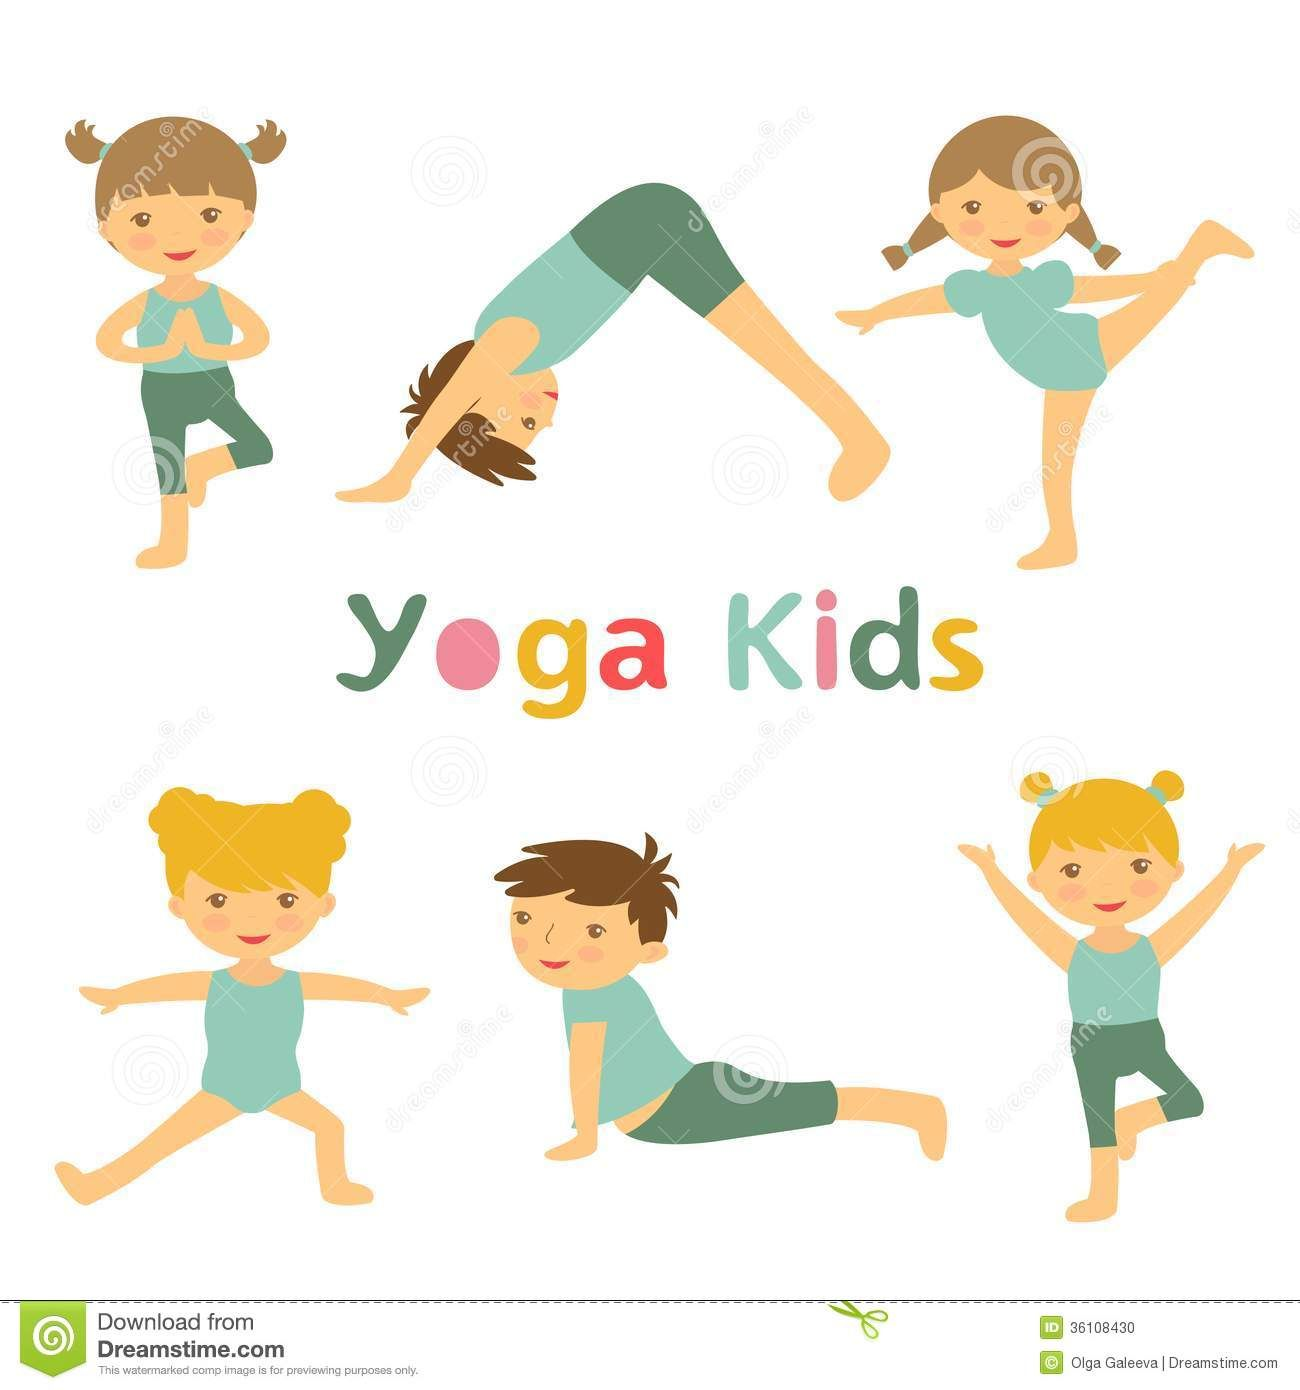 Calm clipart kid meditation. Kids yoga bambini